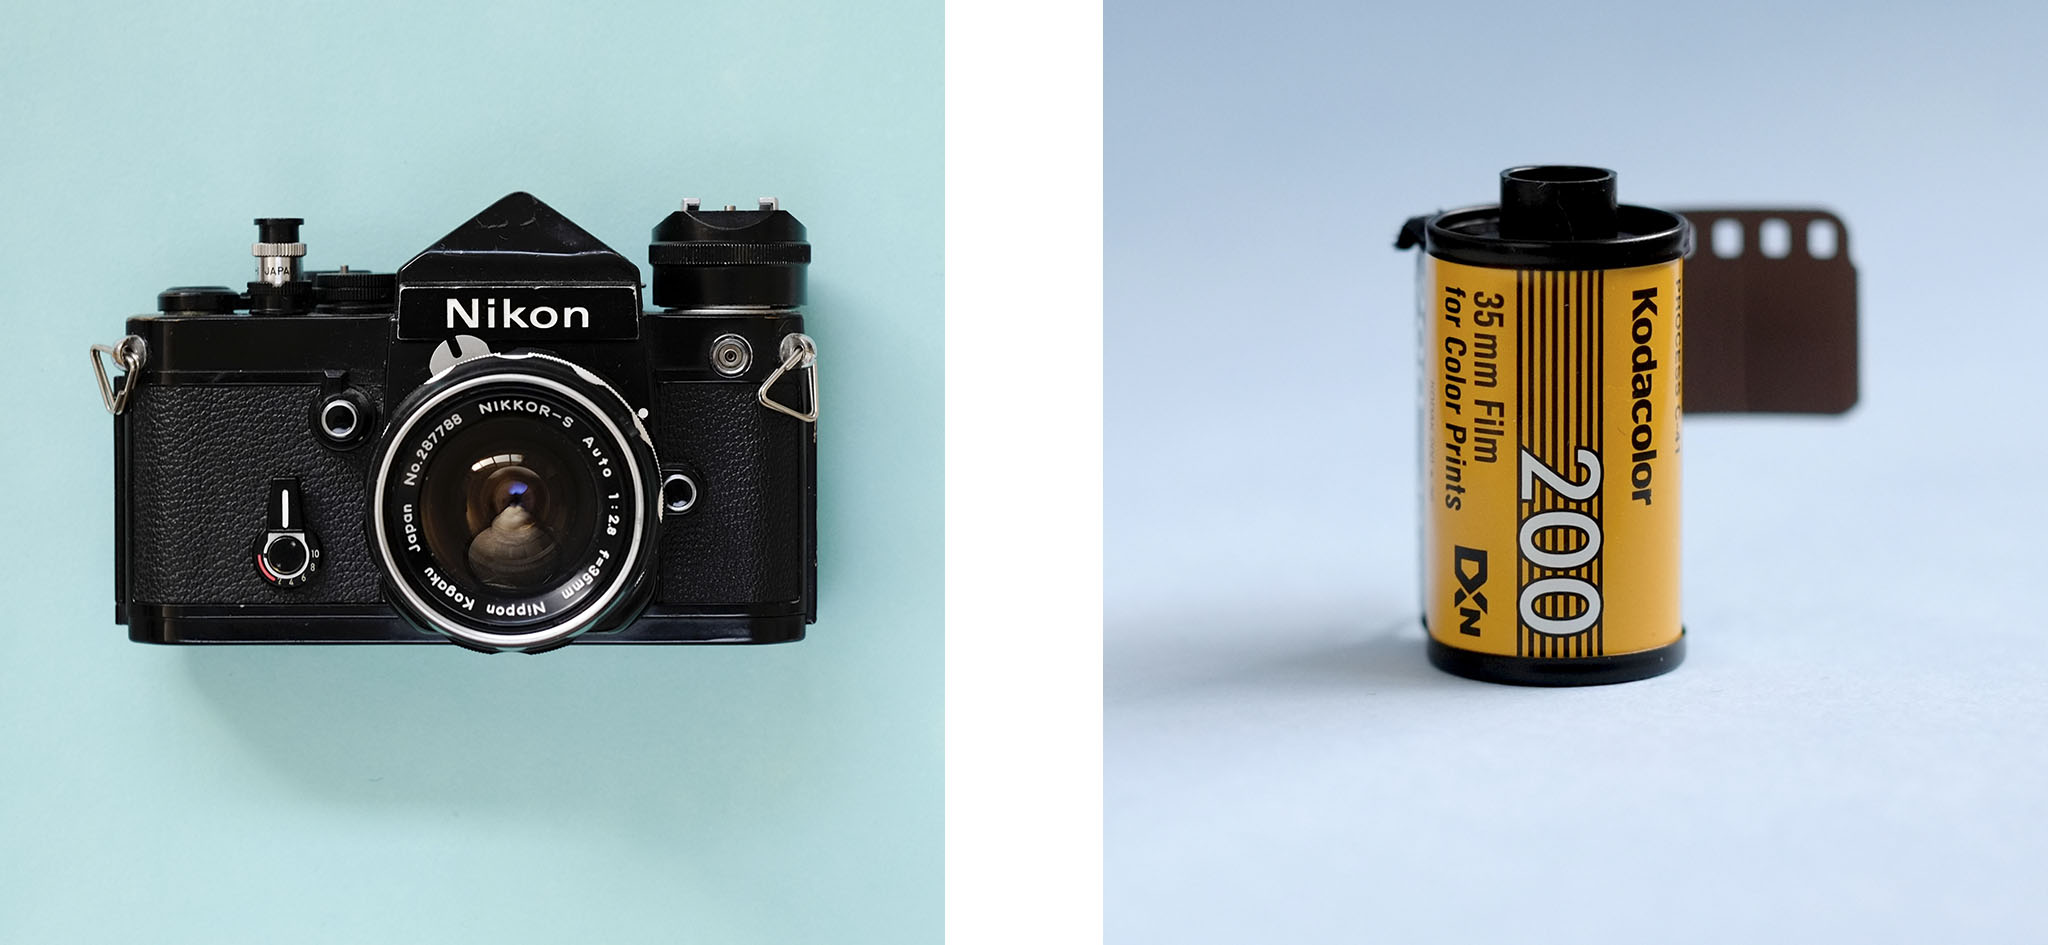 Beginners Guide To Film Photography. Shooting Film Nikon F2 Kodak ColorPlus 200